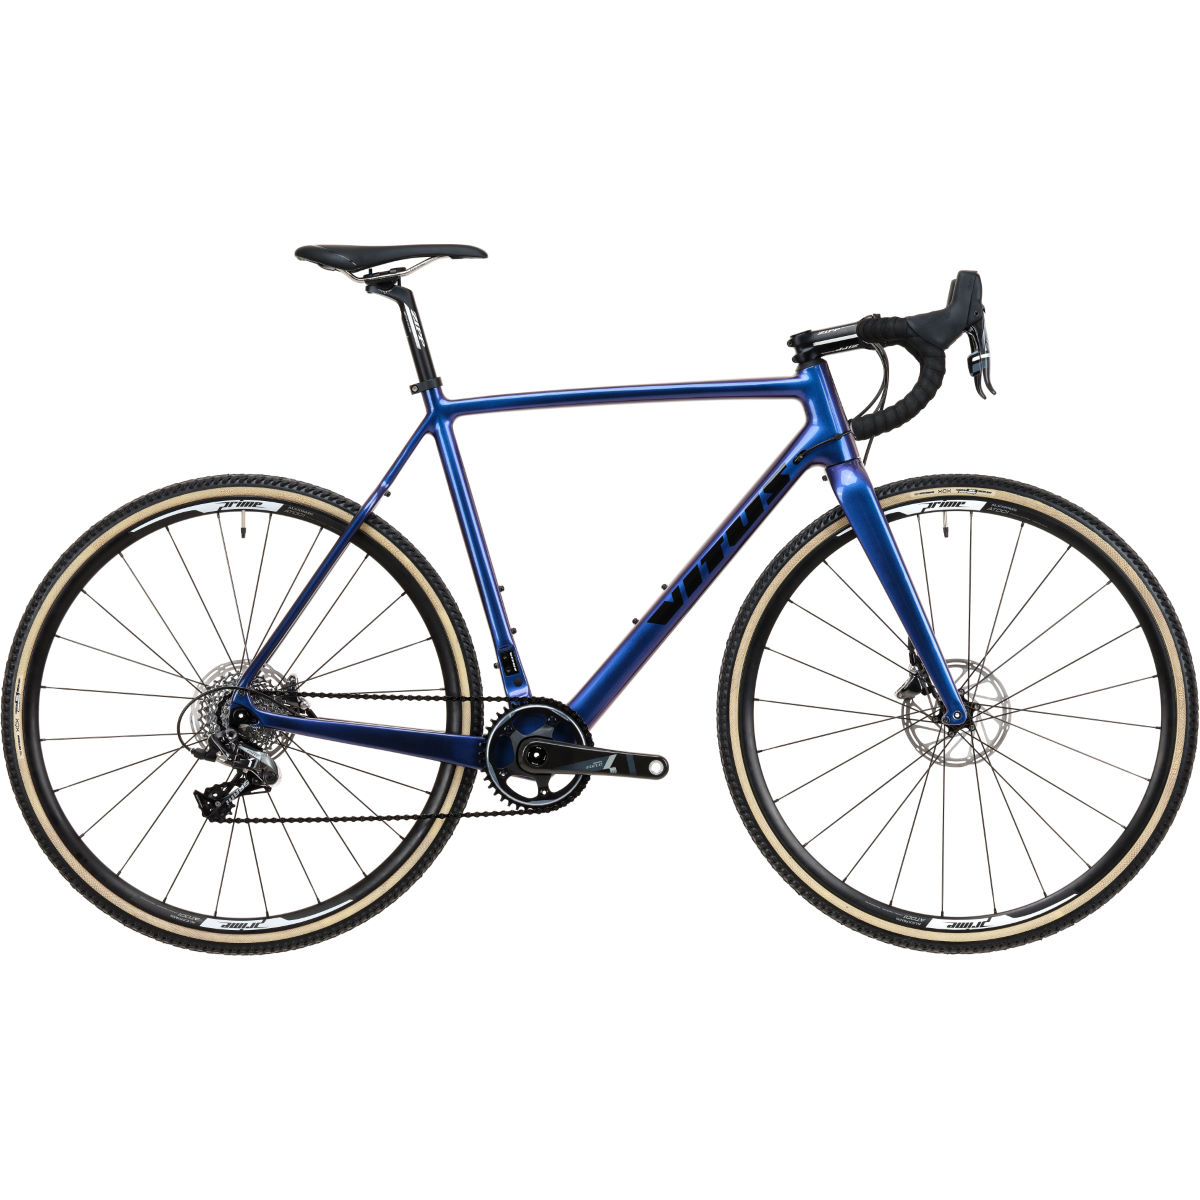 Image of Vélo de cyclo-cross Vitus Energie CRX (Force, 2020) - Medium